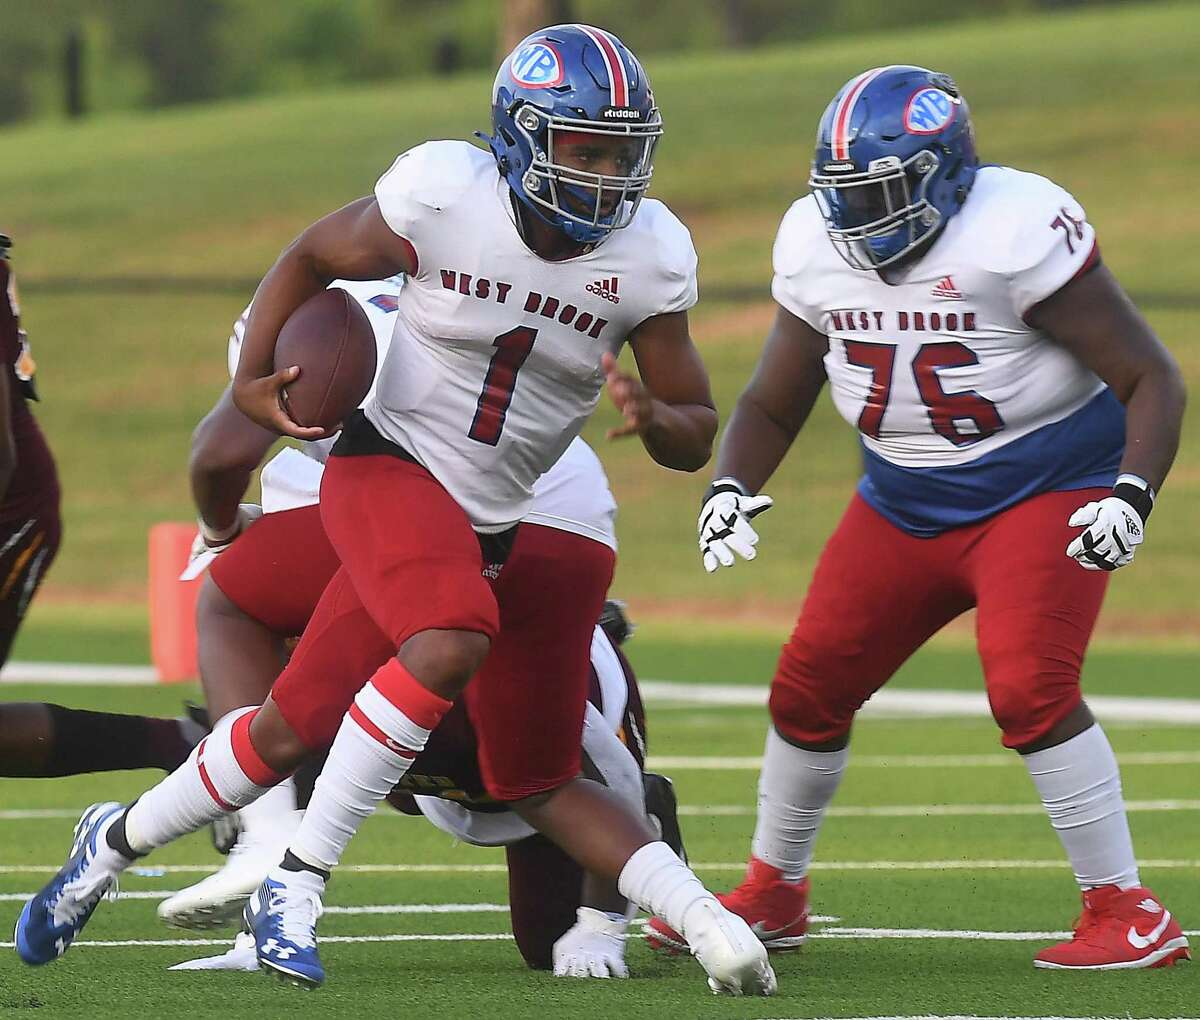 West Brook's Bryce Anderson runs the ball against Beaumont United during the season opening Alumni Bowl game Friday at BISD Memorial Stadium. Photo made Friday, August 27, 2021 Kim Brent/The Enterprise